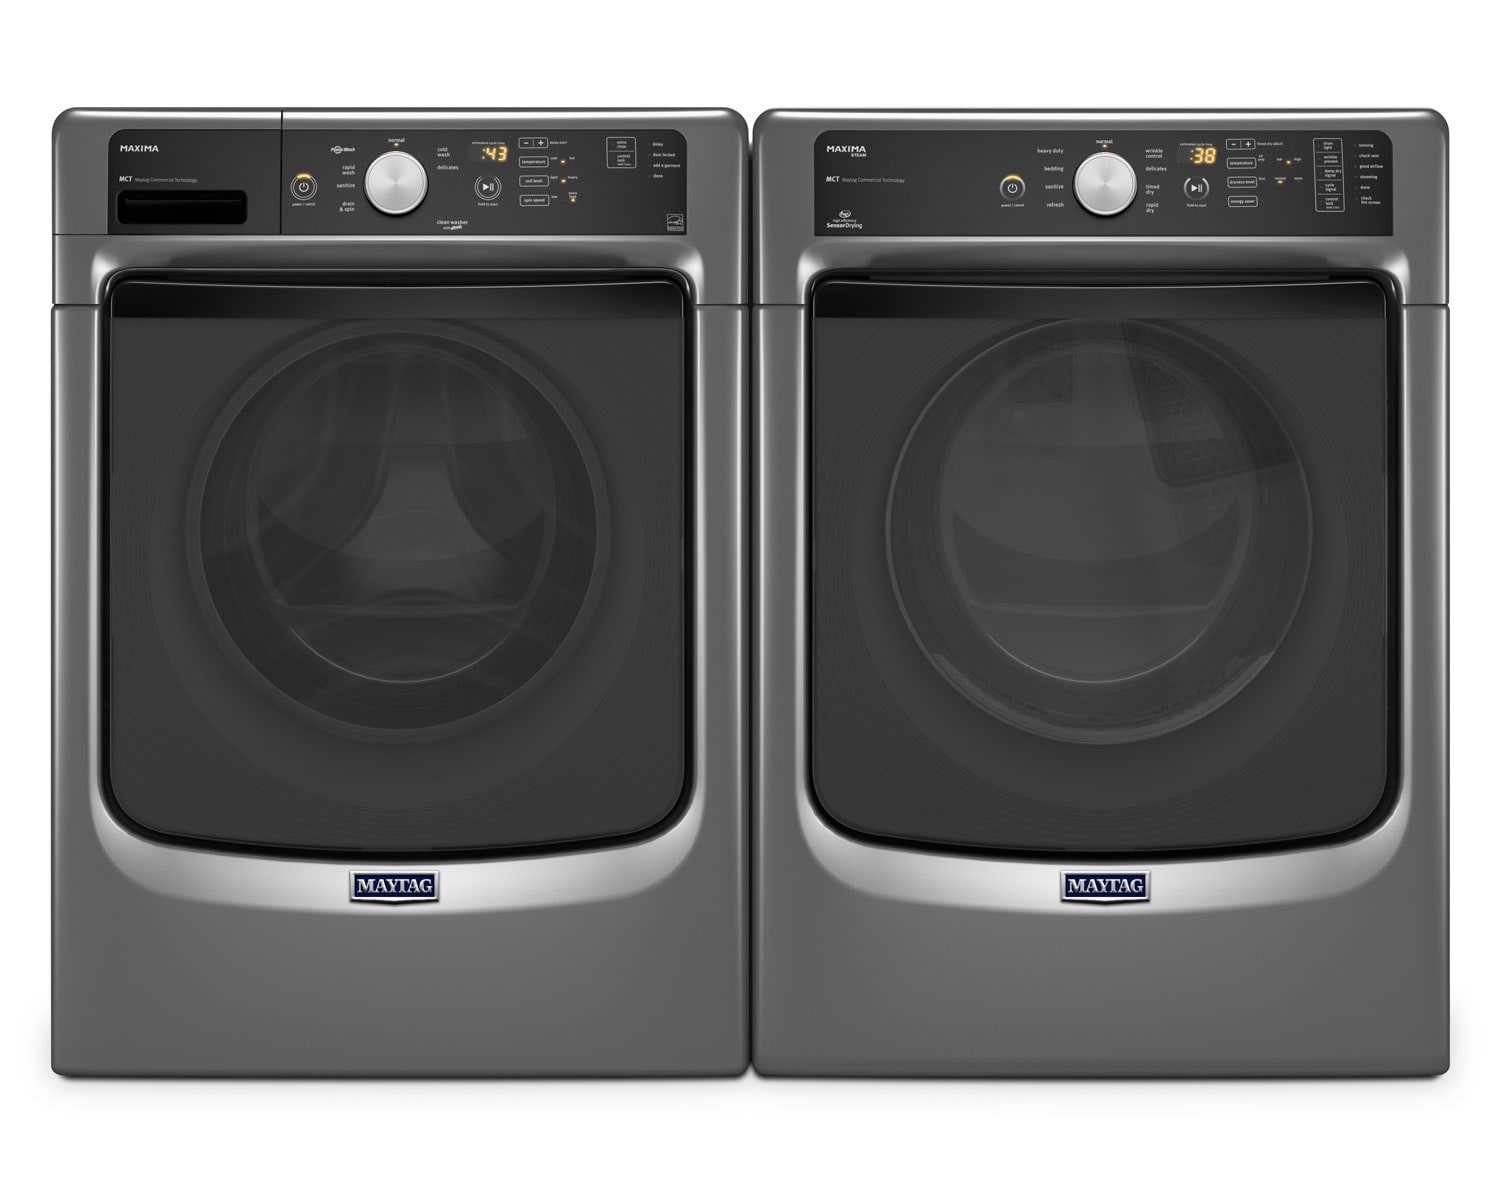 Maytag Maxima Metallic Slate Top-Load Laundry Pair